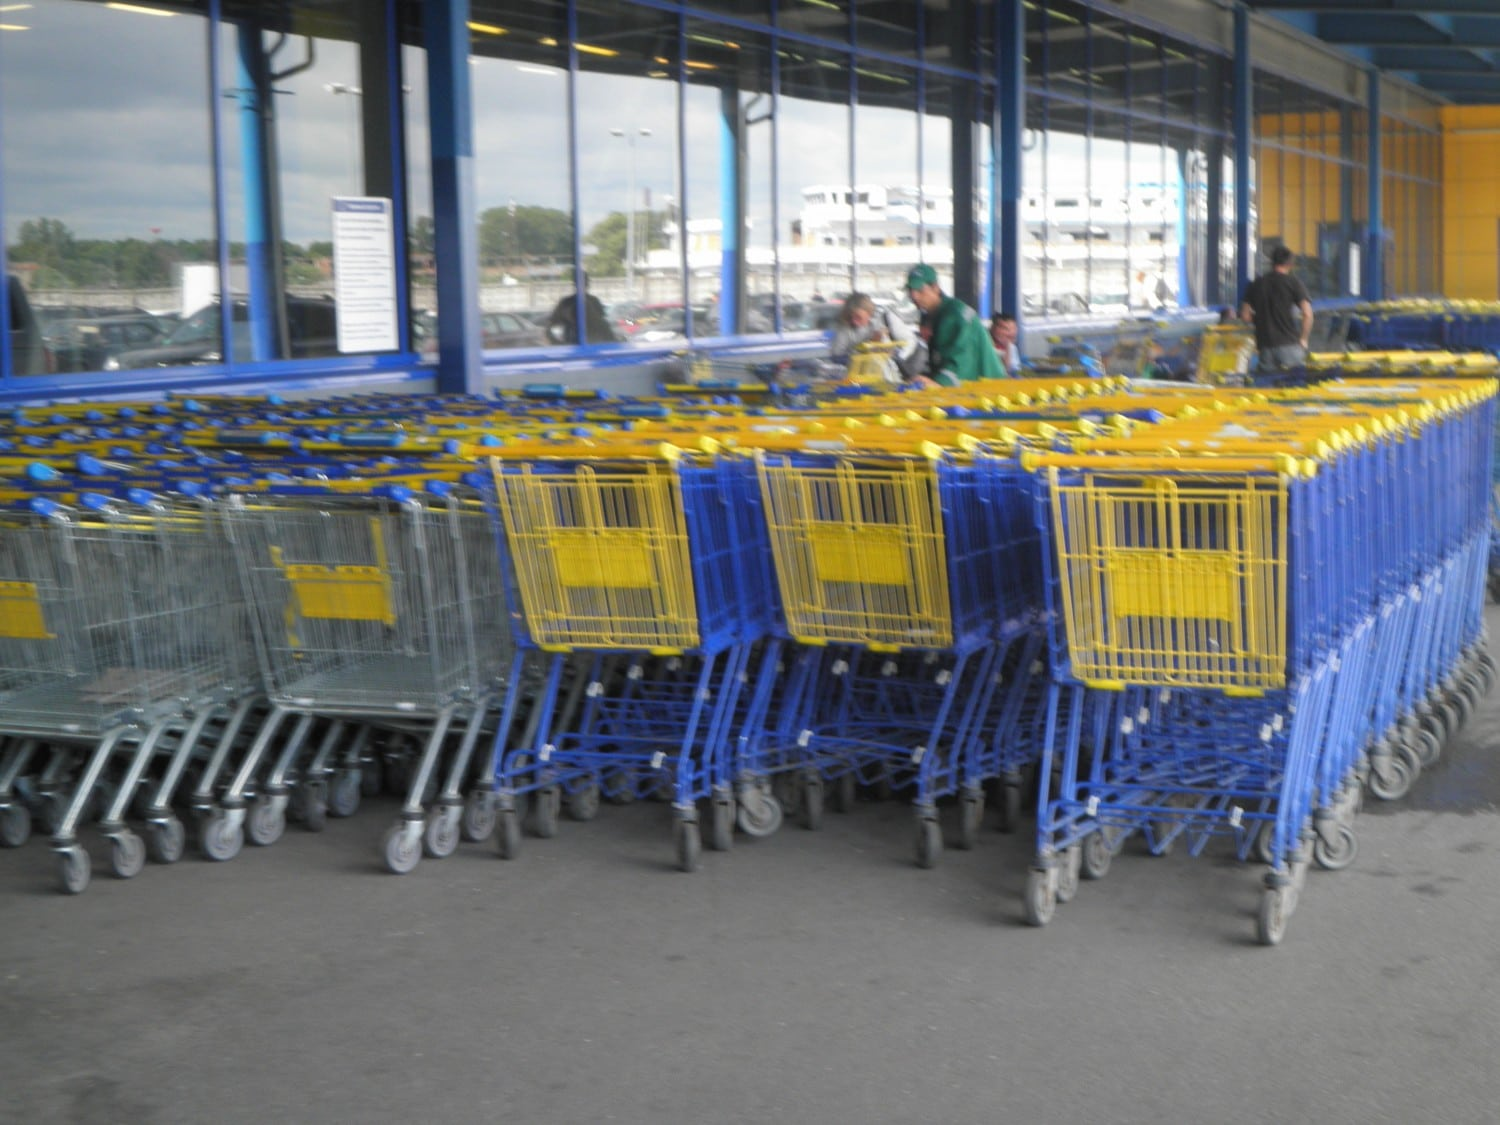 Shopping carts at Lenta